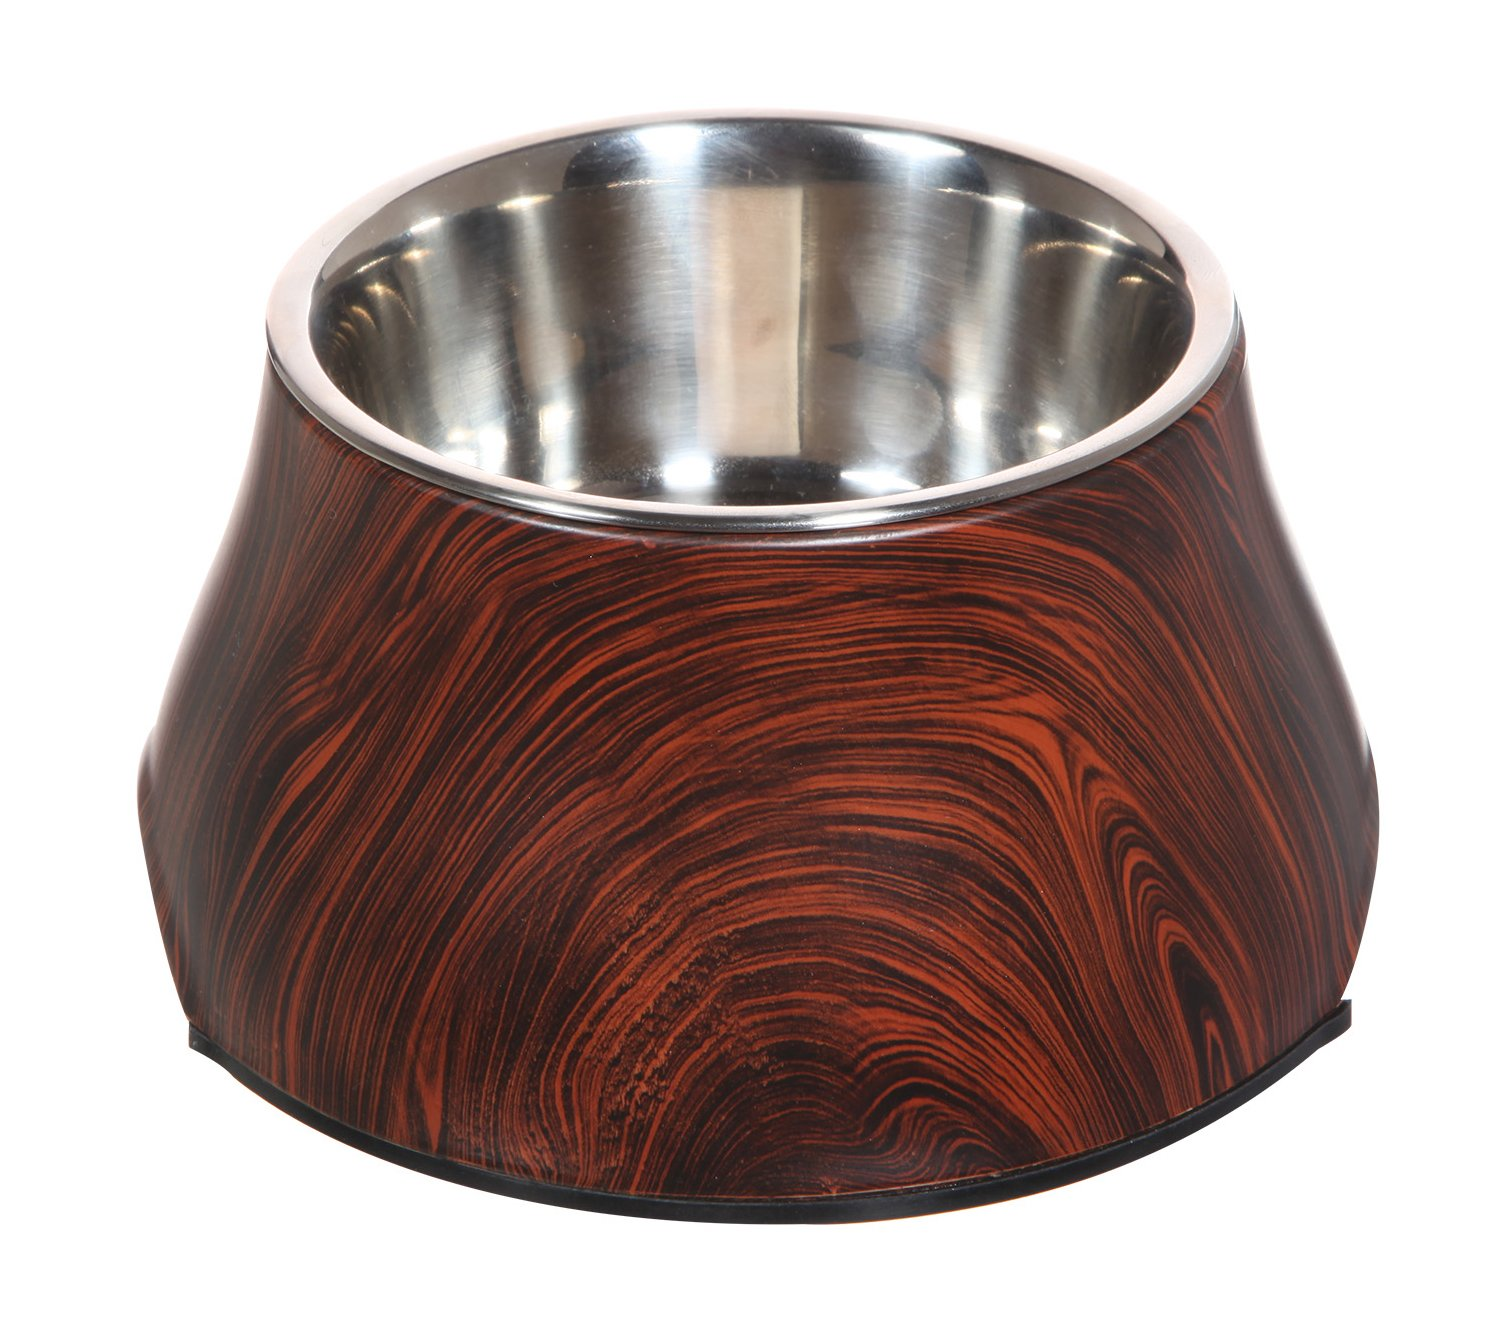 Dogit 73775 Design Faux Wood Bowl for Dogs